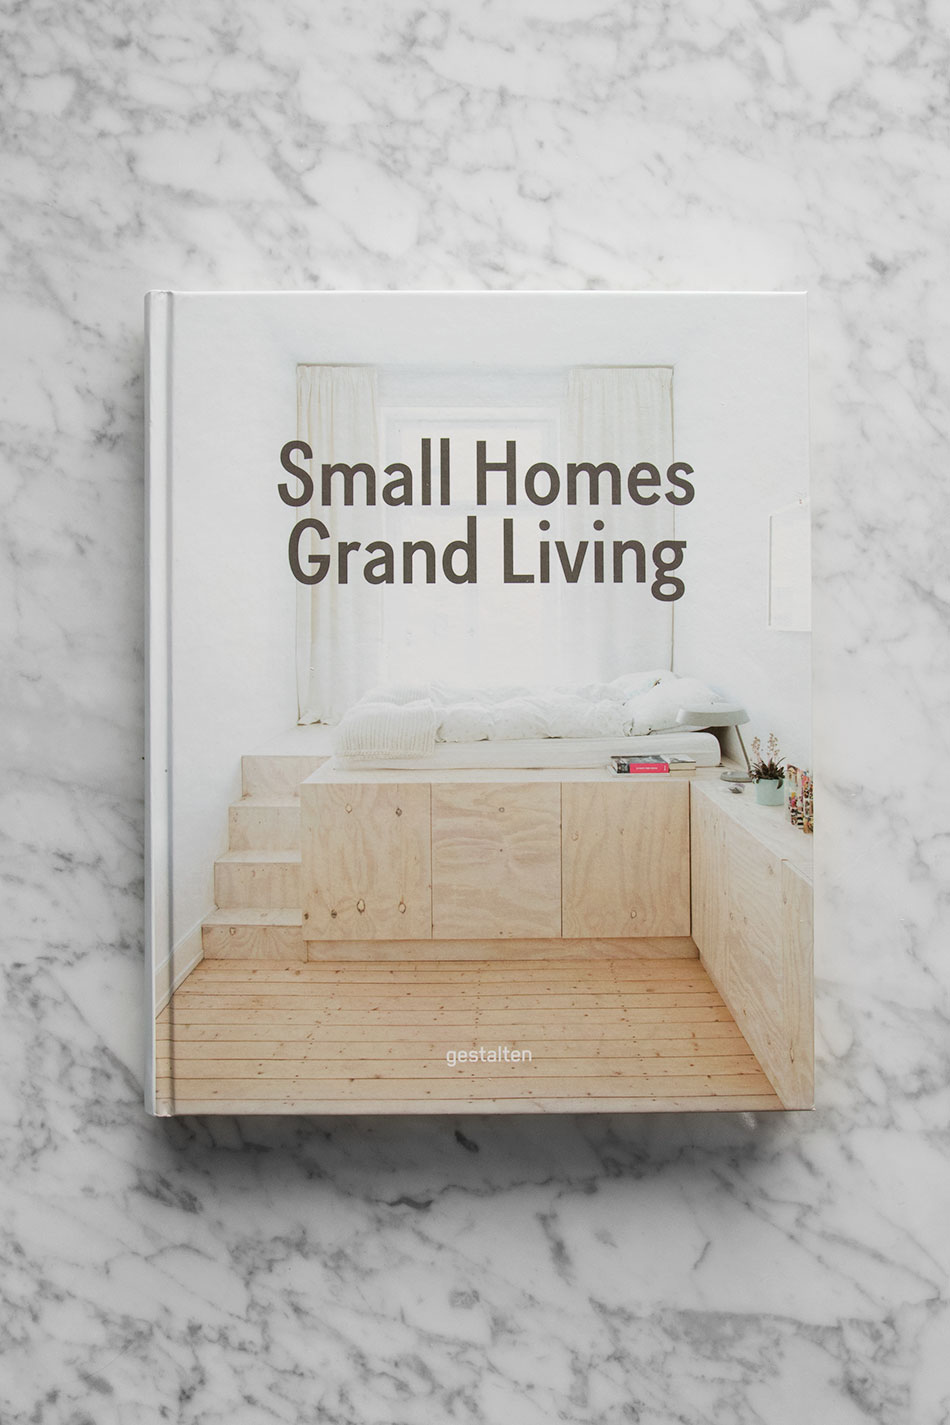 Small Homes Grand Living